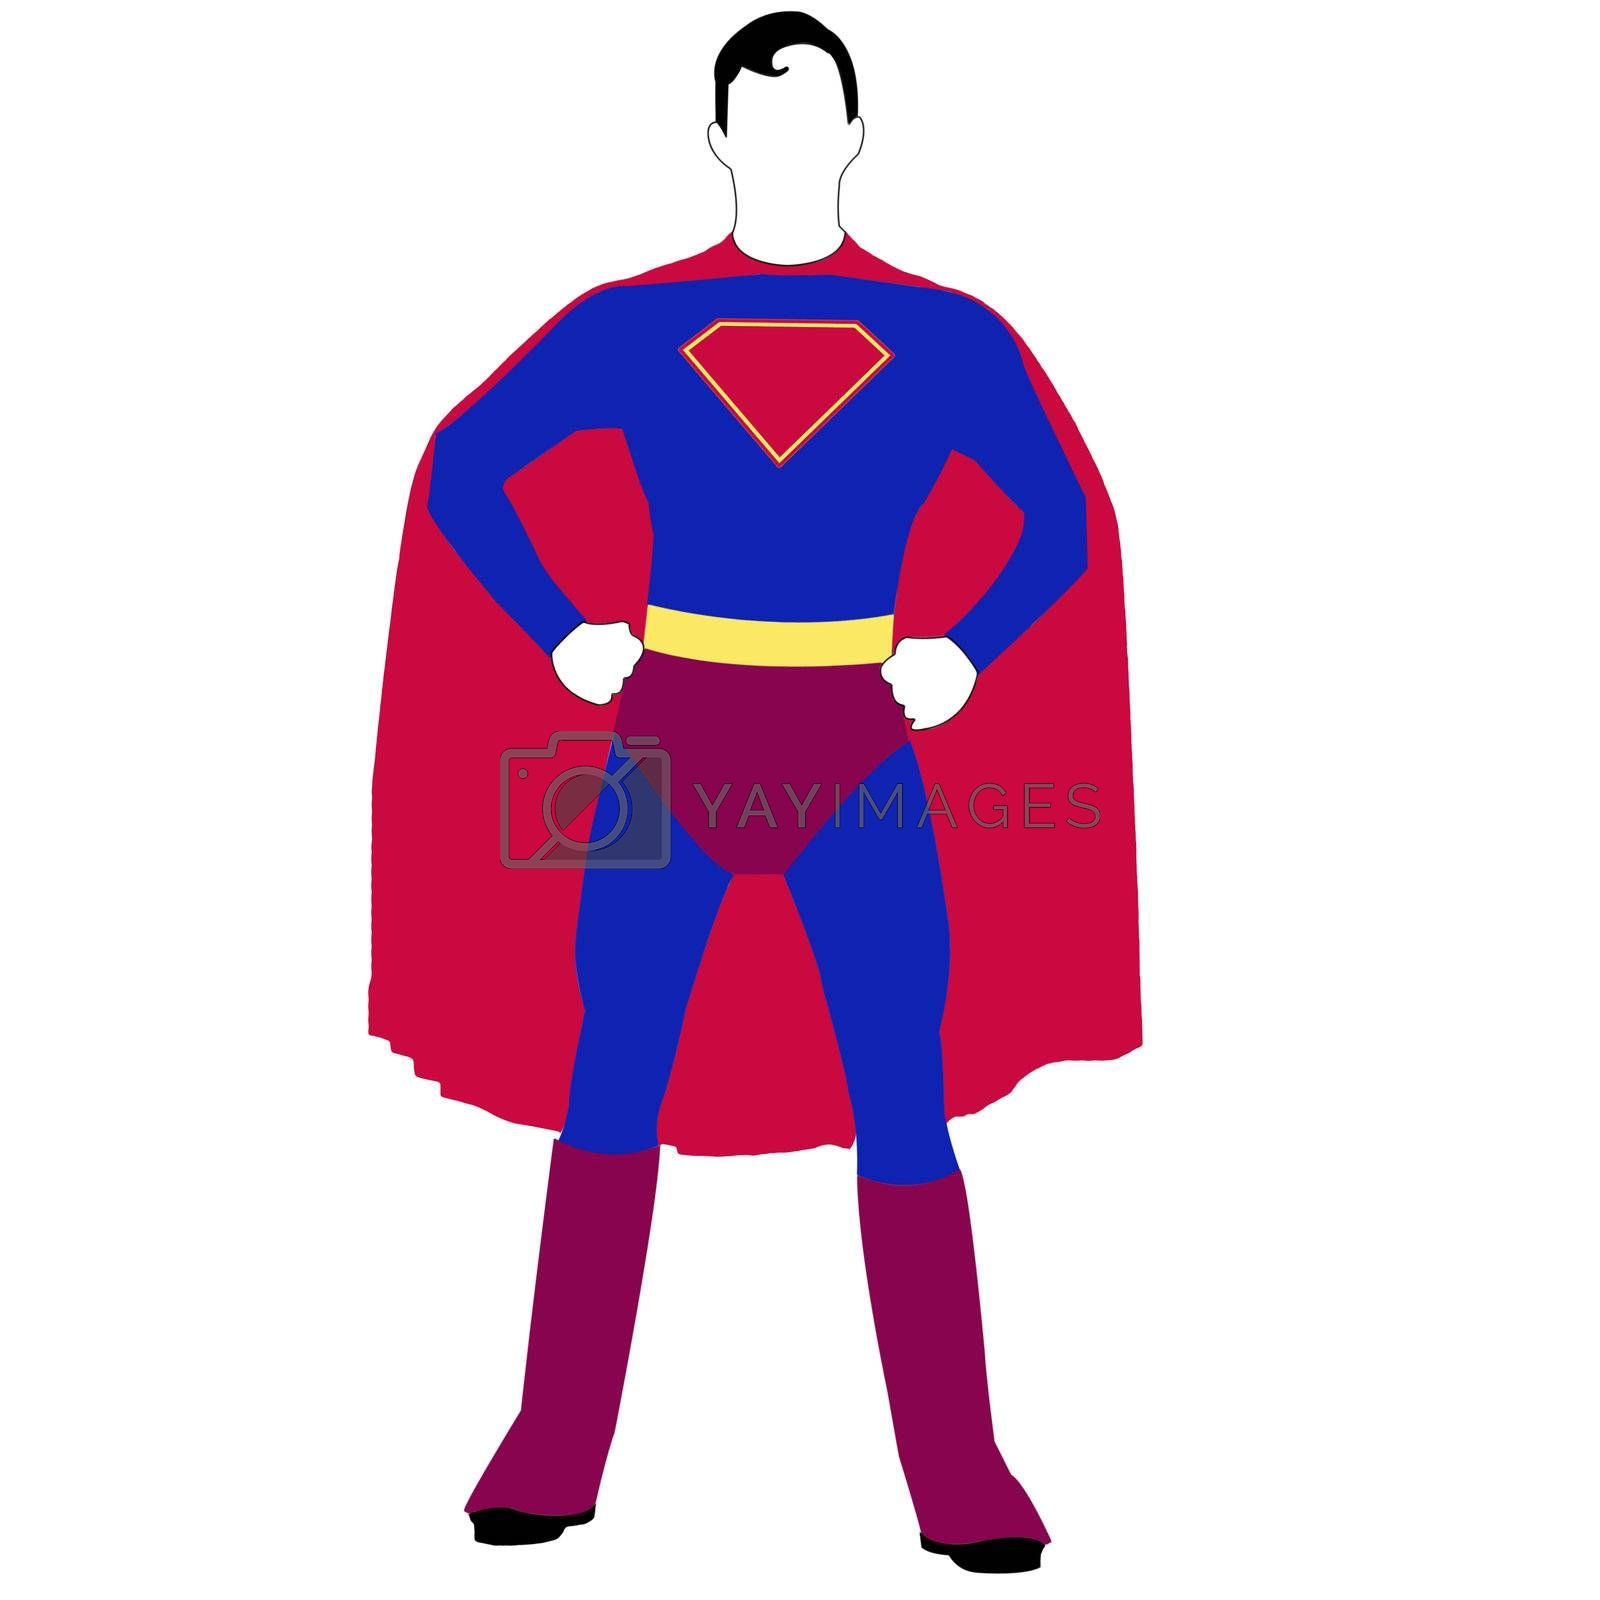 Superhero with red cape - illustration